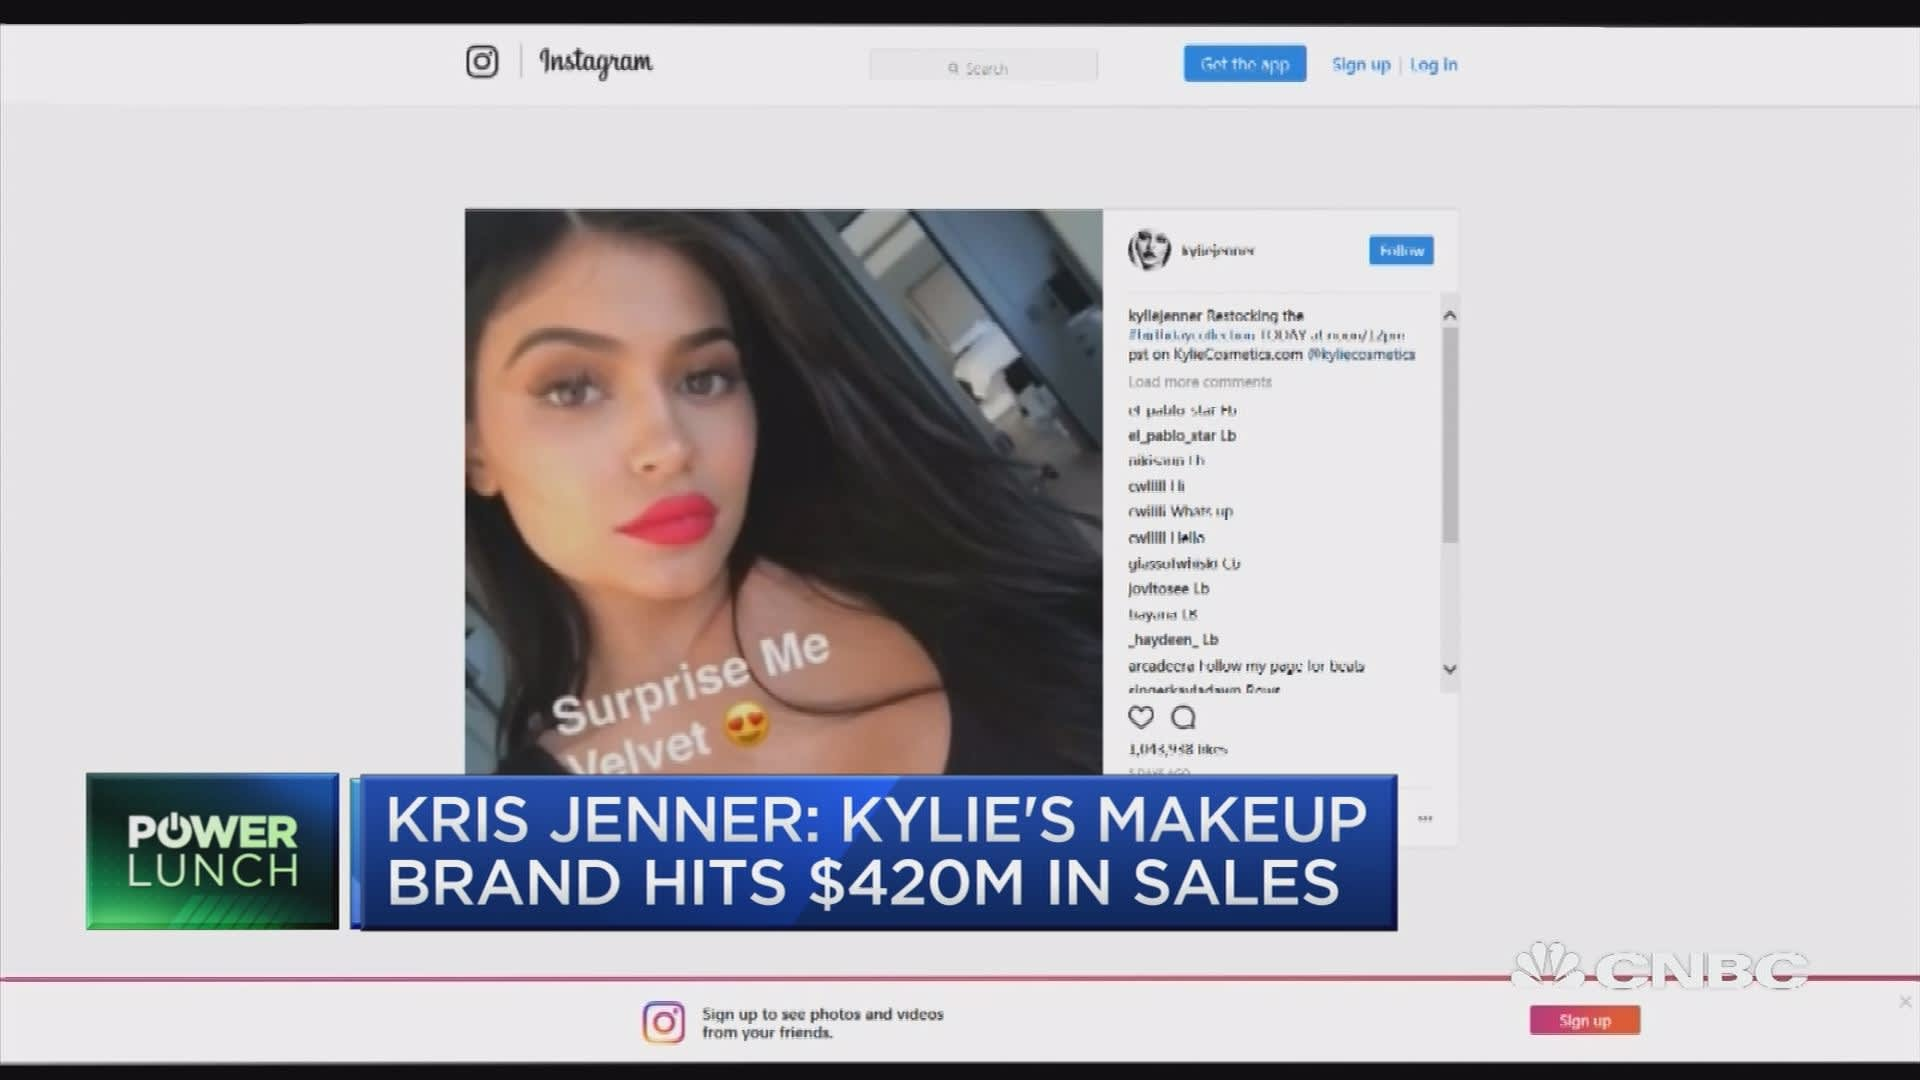 Kris Jenner says Kylie's makeup brand hits $420M in sales